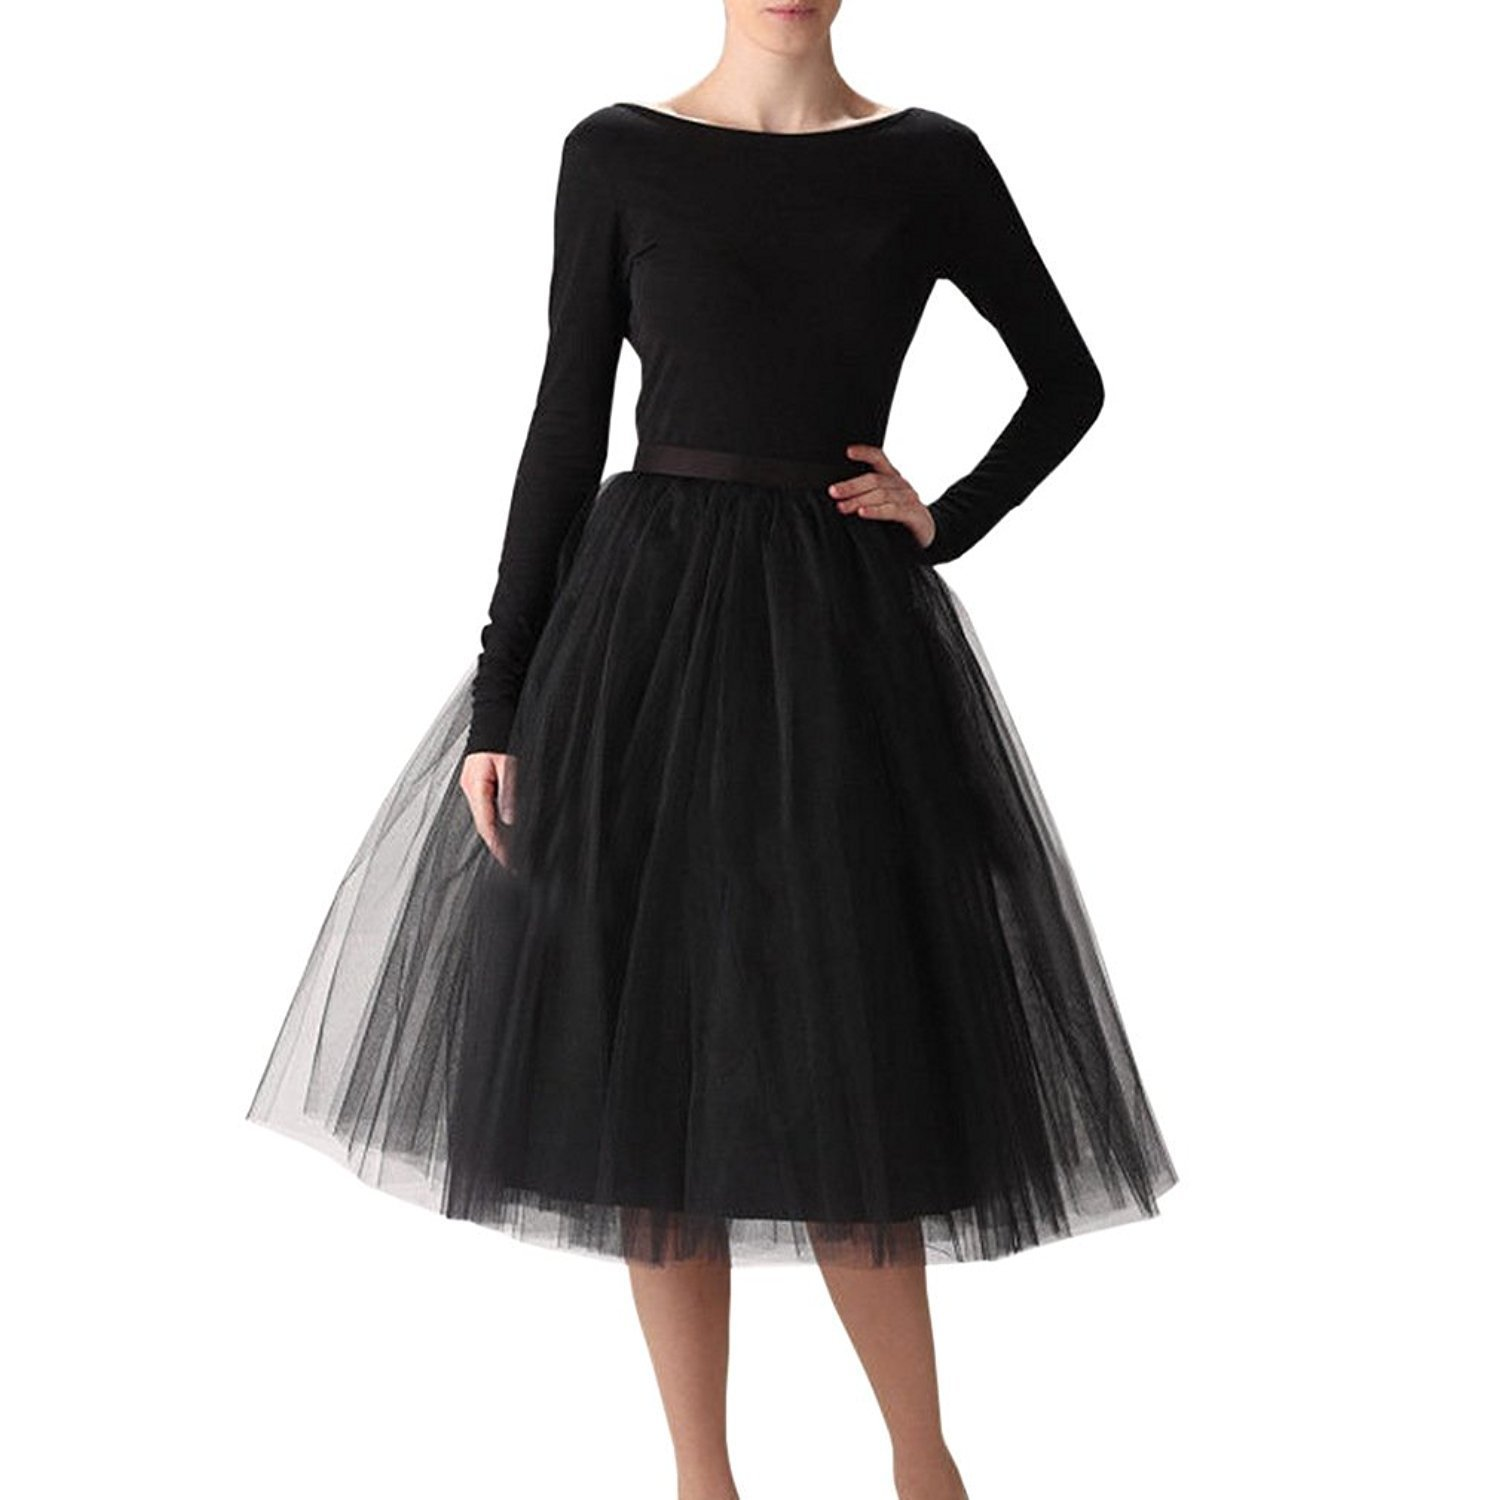 The Aliby Wedding Planning Women's A Line Short Knee Length Tutu Tulle Prom Party Skirt